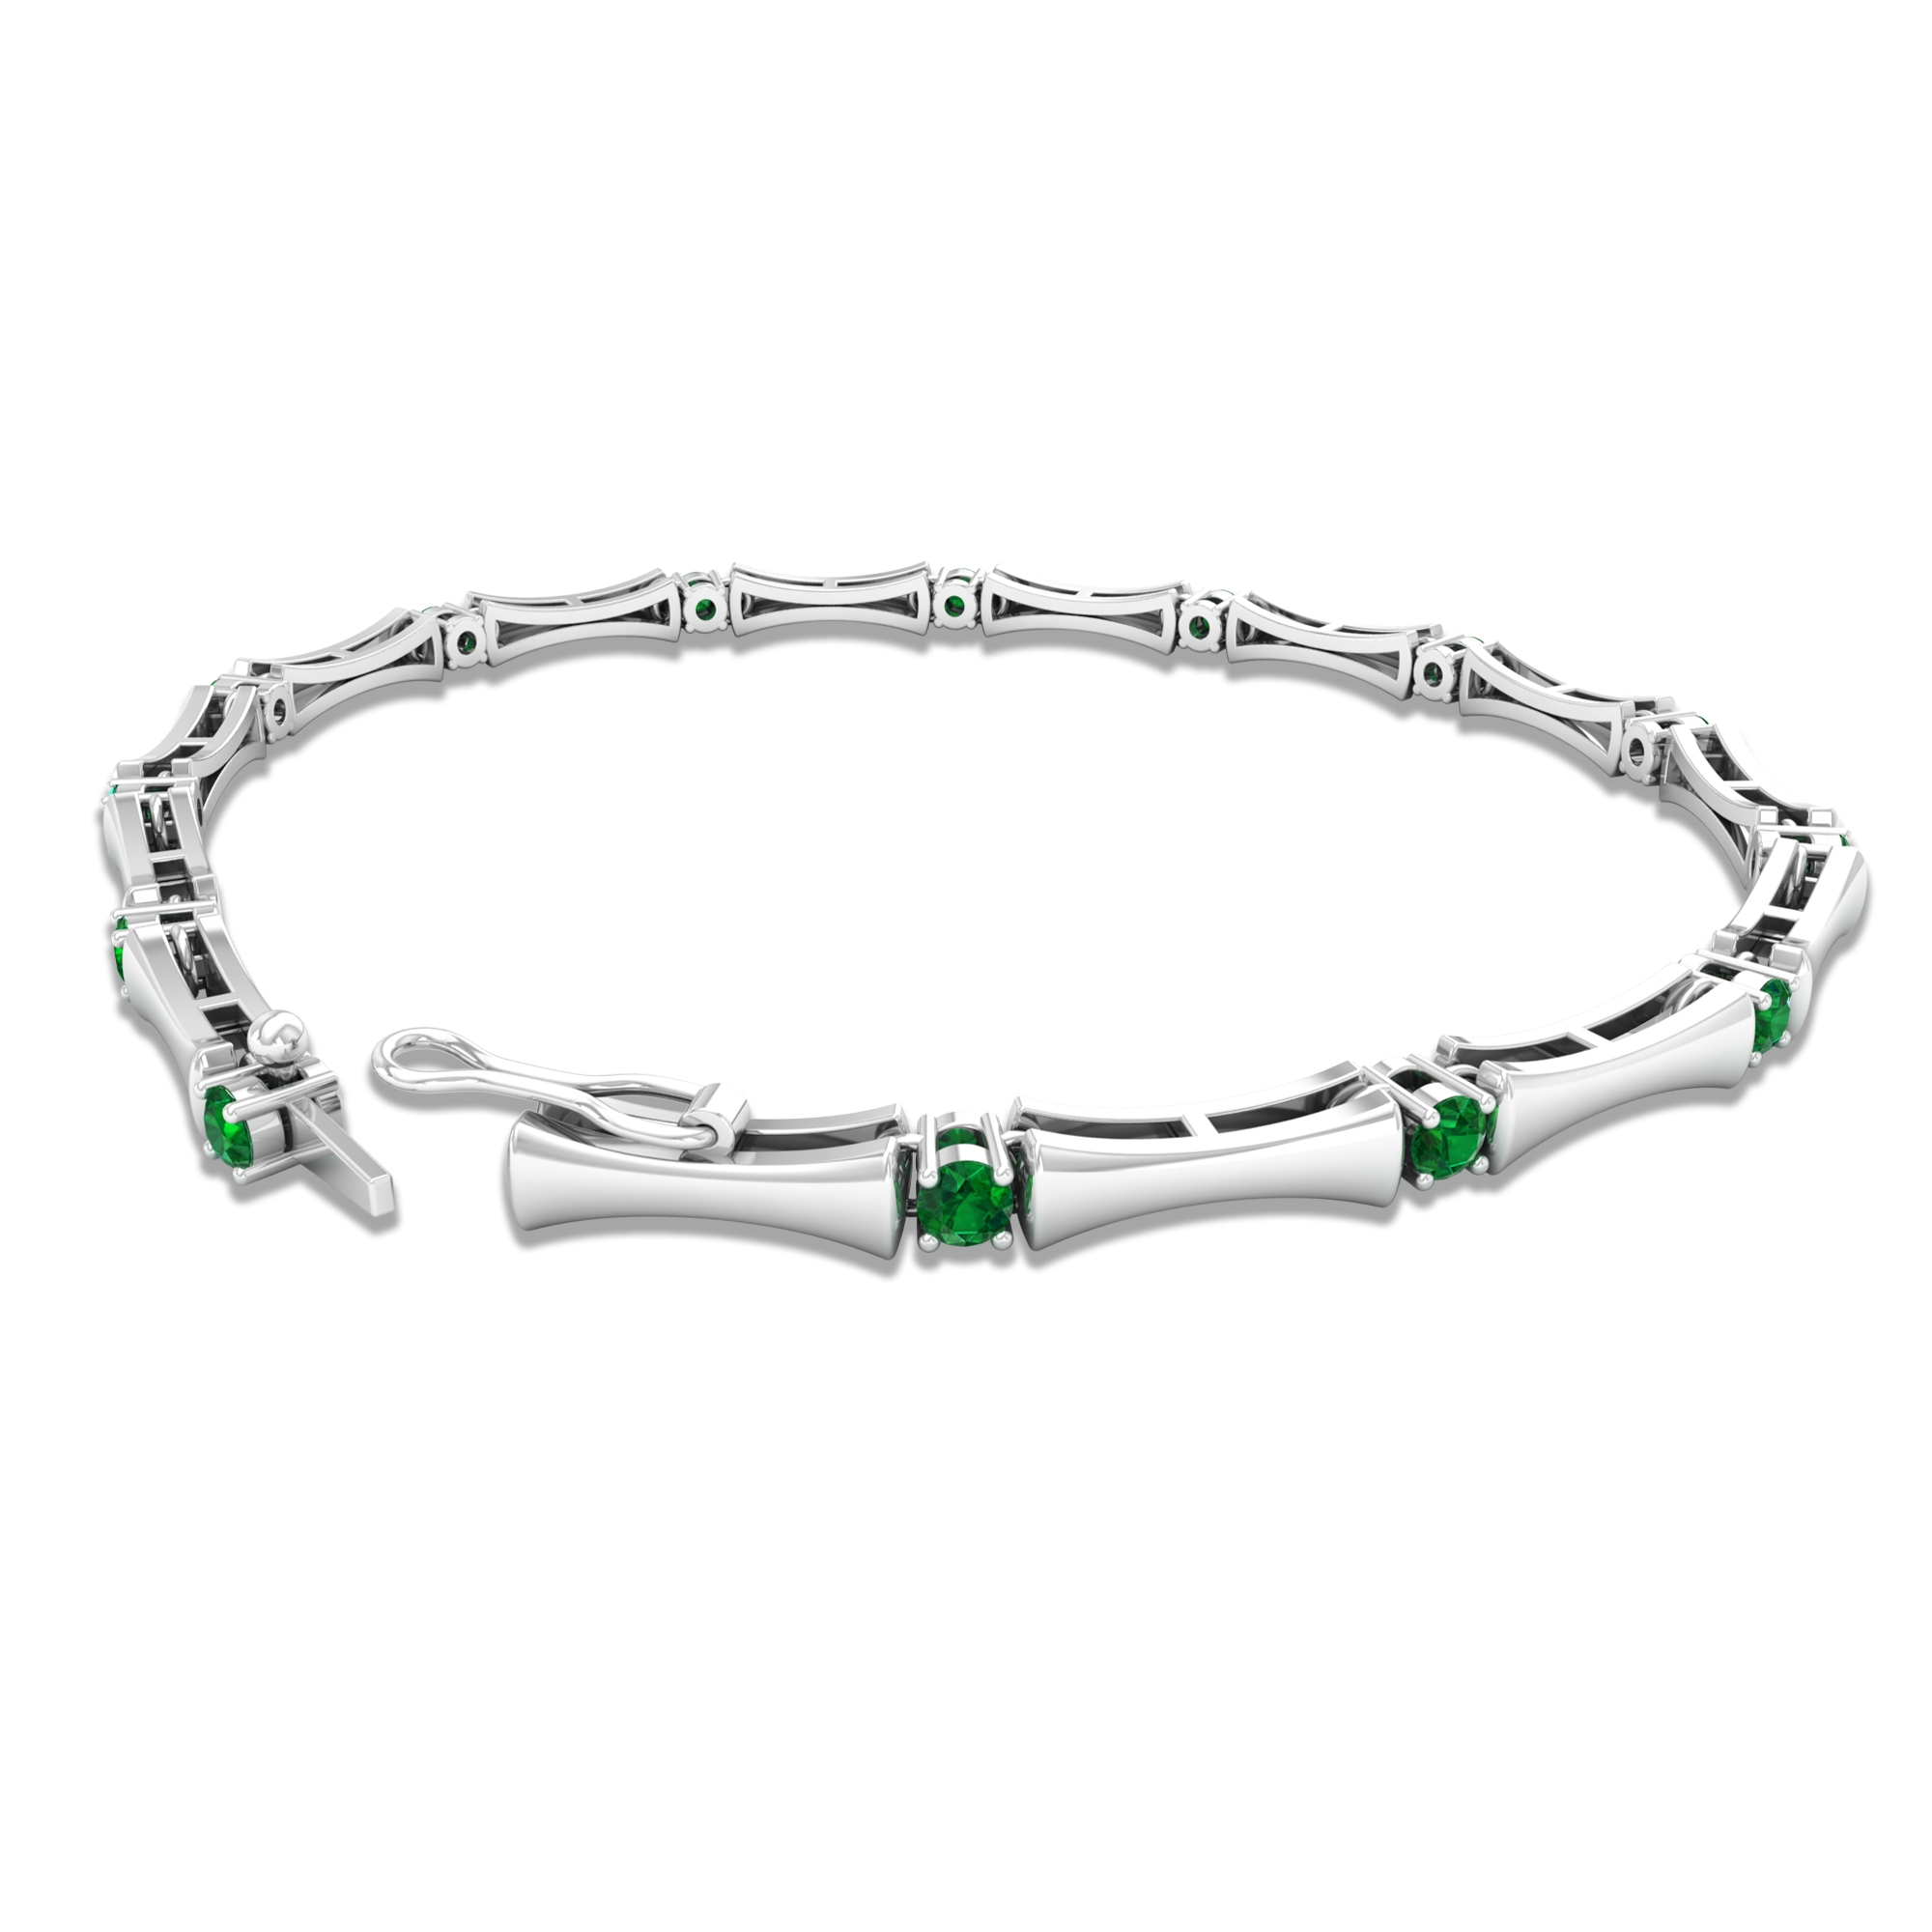 3/4 CT Round Cut Emerald Tennis Bracelet in Prong Setting